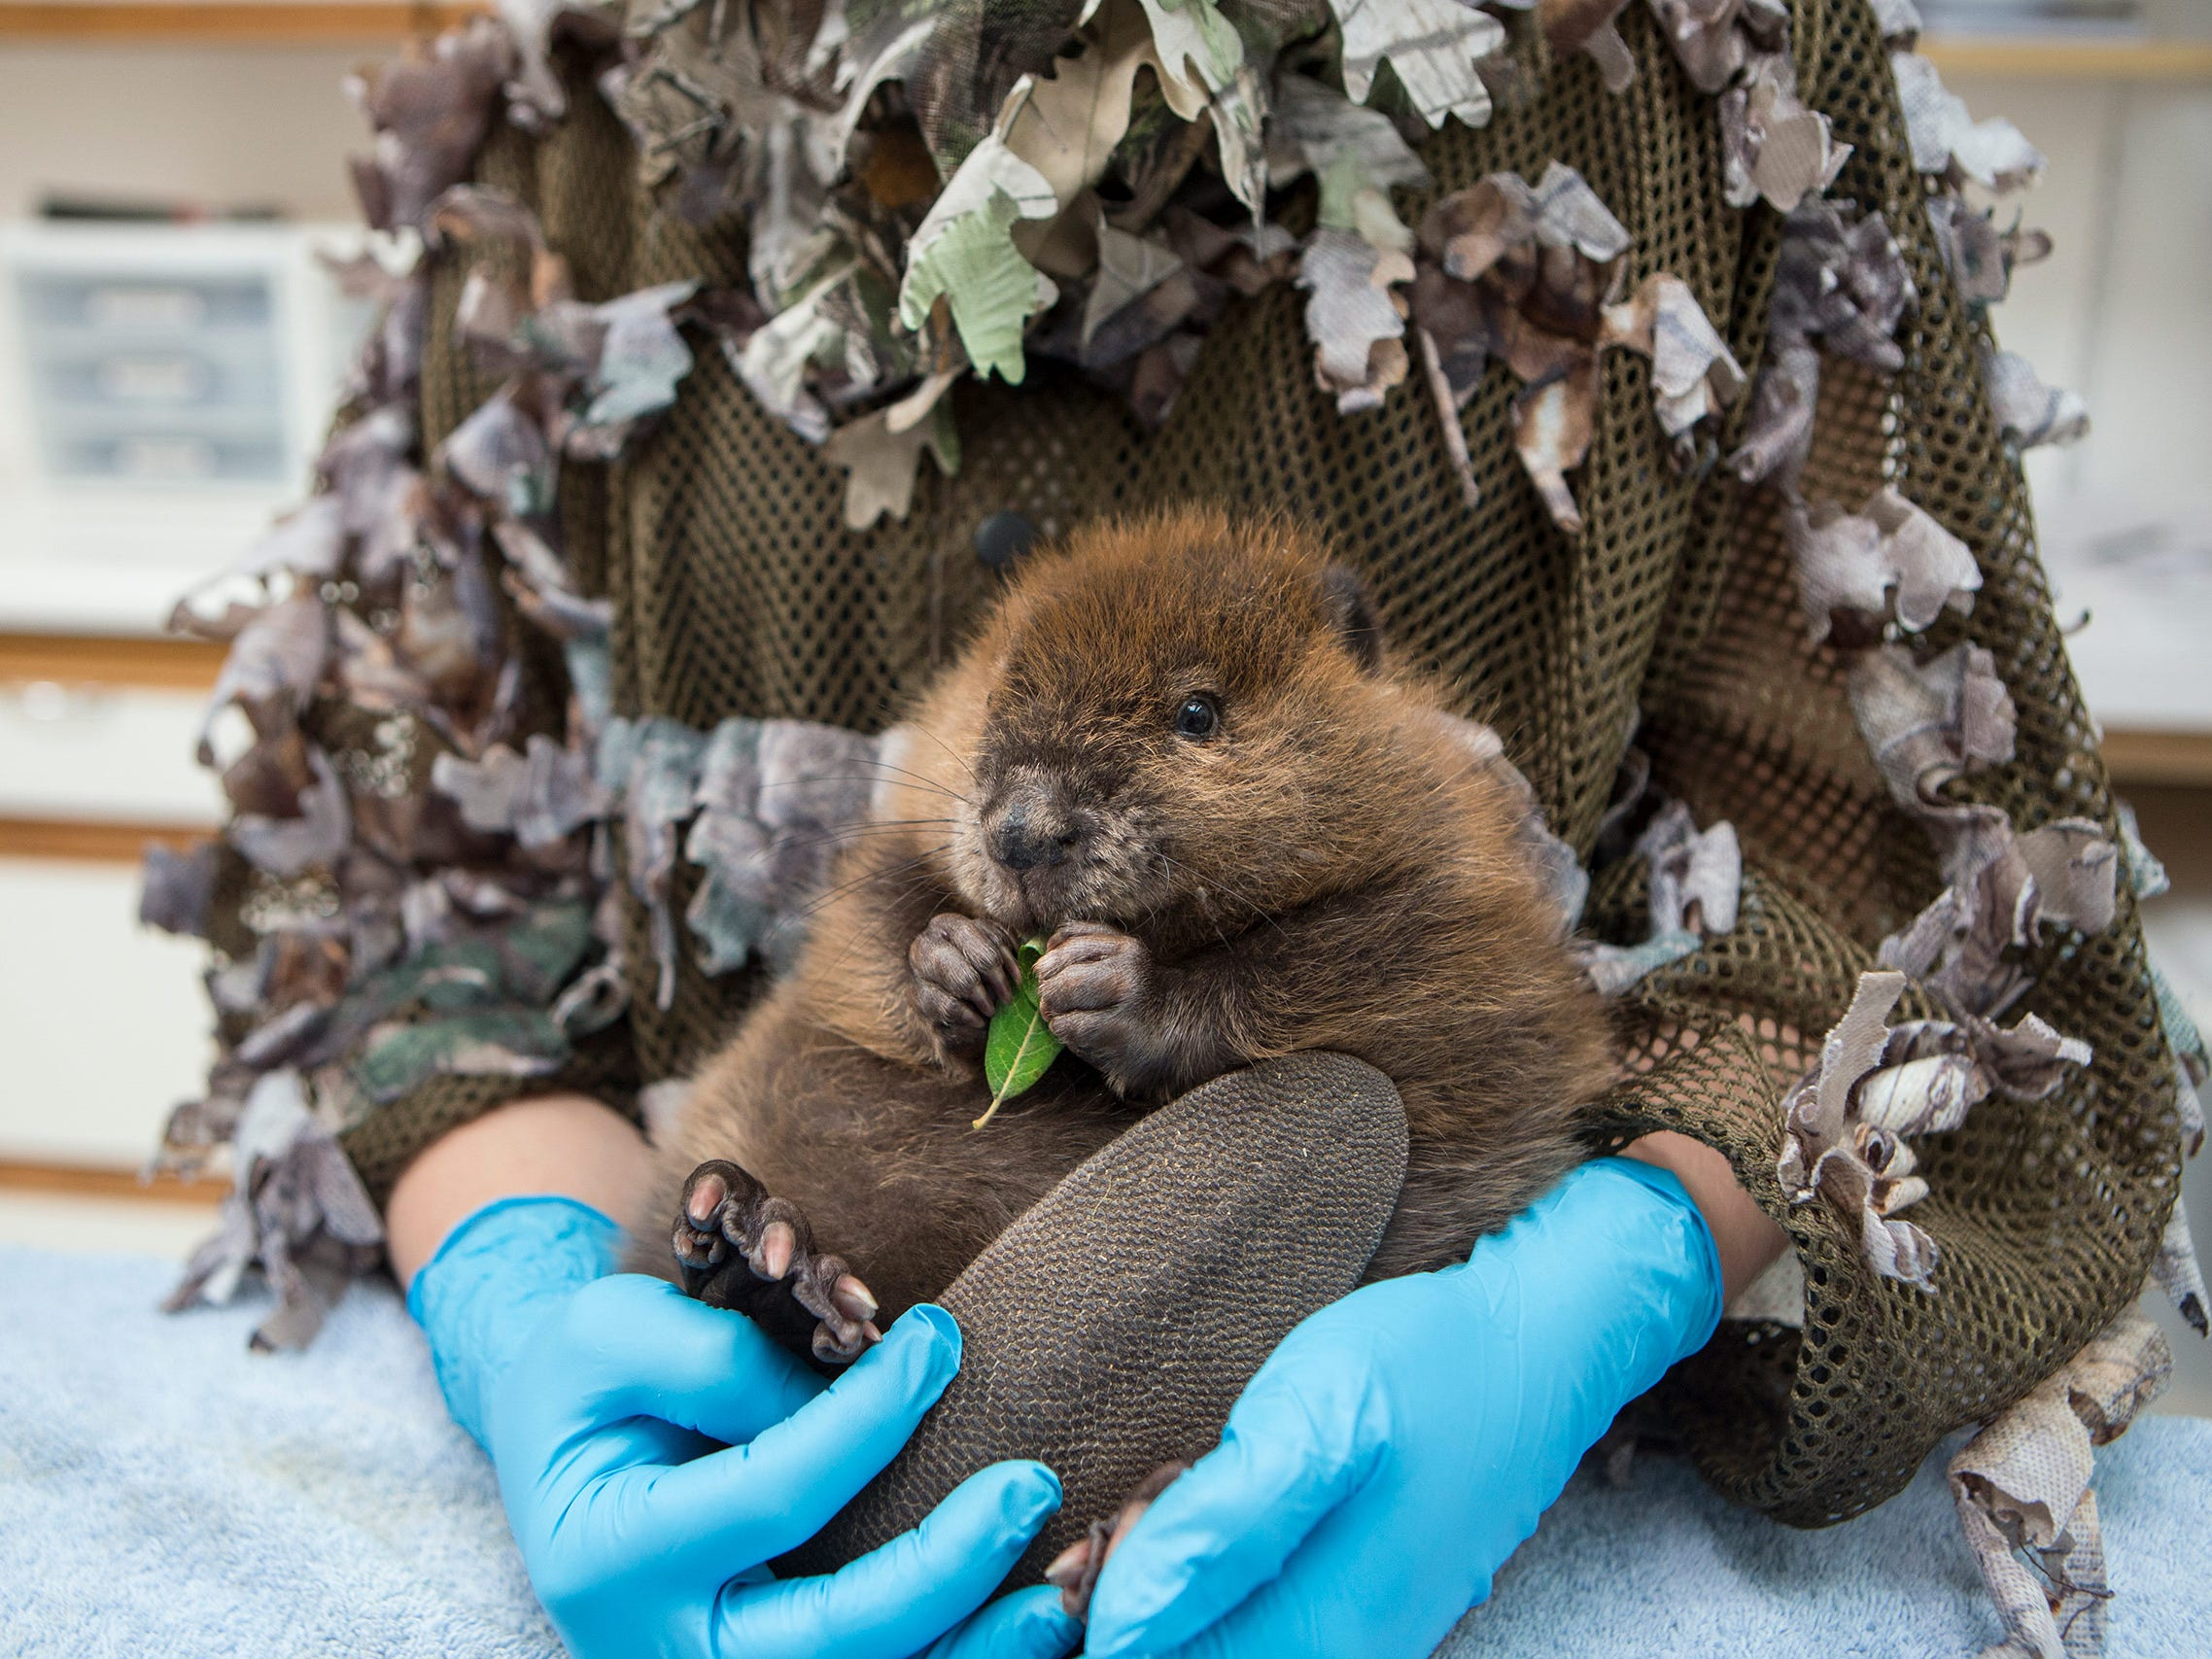 The Orphaned Beaver by Suzi Eszterhas, USA  -- A one-month-old orphaned North American beaver kit is held by a caretaker at the Sarvey Wildlife Care Center in Arlington, Washington. Luckily it was paired with a female beaver who took on the role of mother and they were later released into the wild. -- Canon 1DX + 24-70mm f2.8 lens; 1/200 sec at f3.5; ISO 1600.